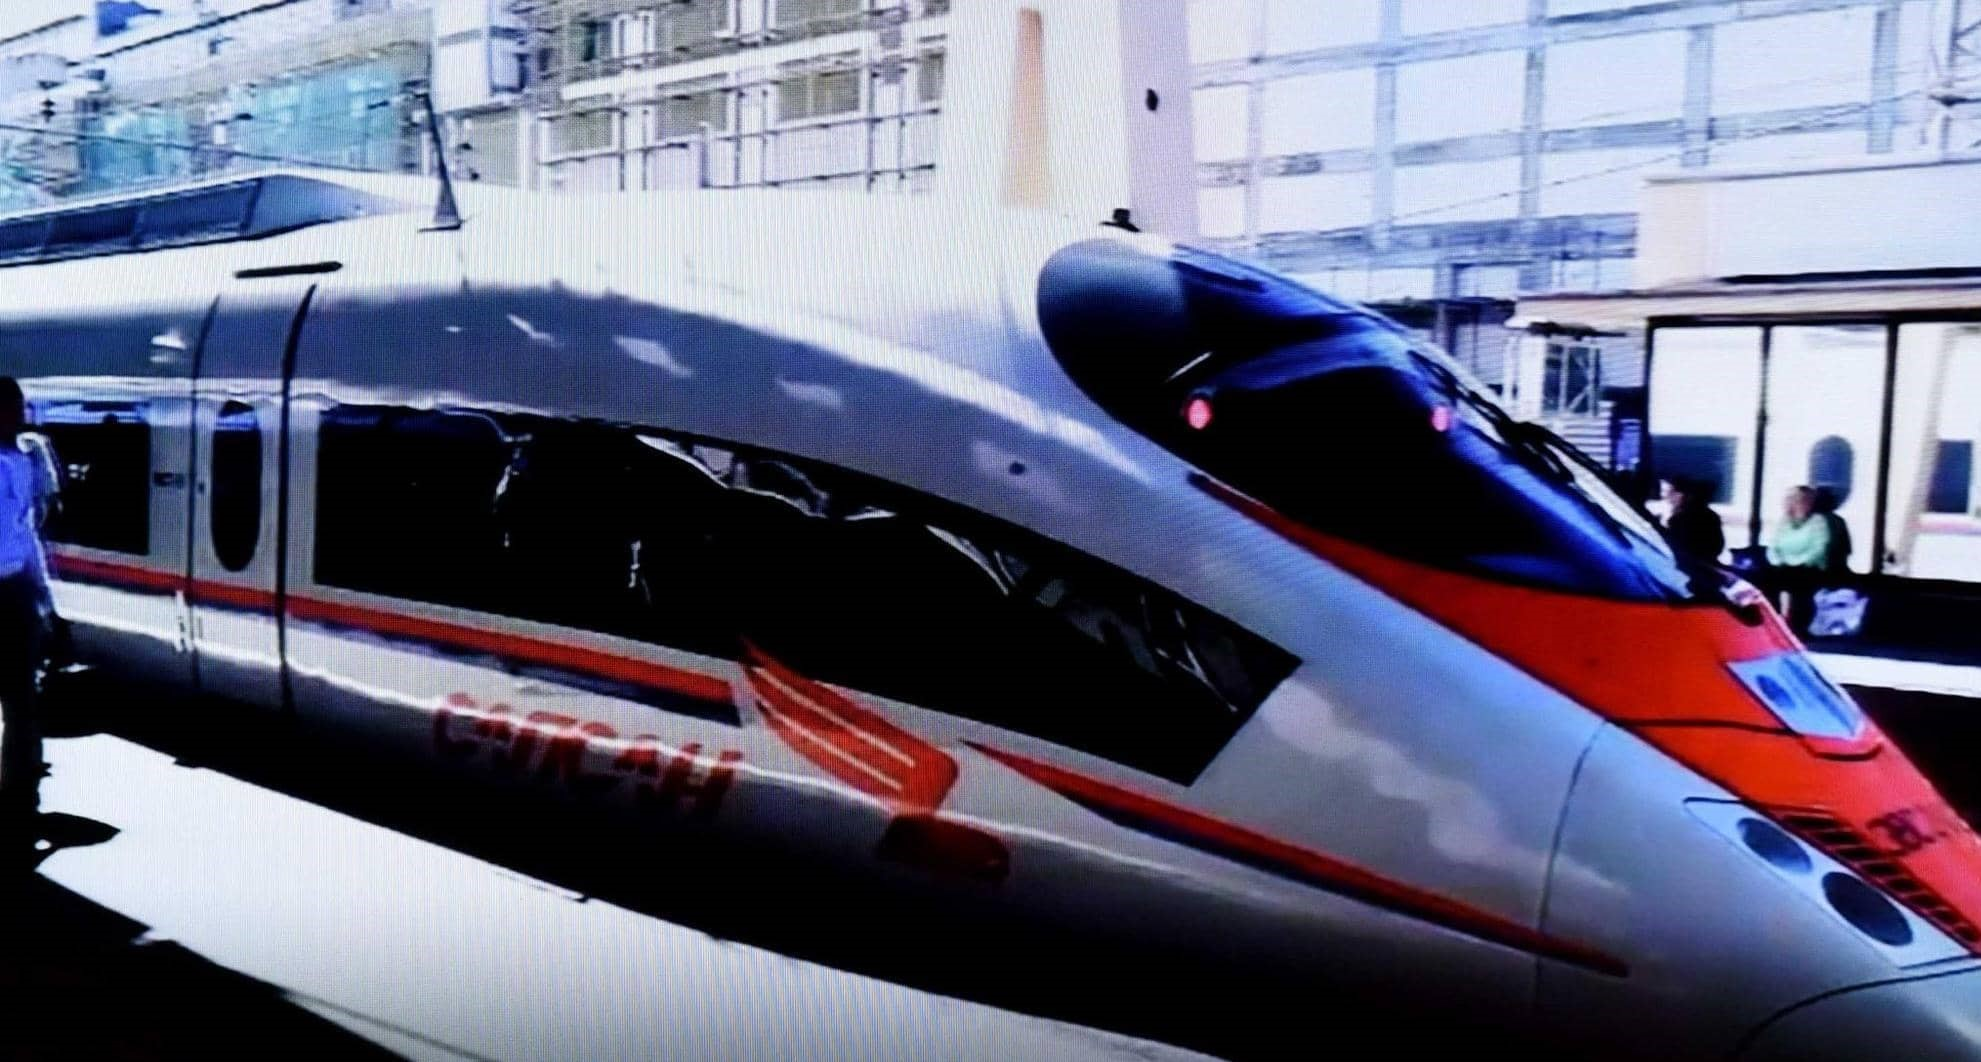 Egypt Signs MoU with Siemens for $23Bln High-Speed Train Line